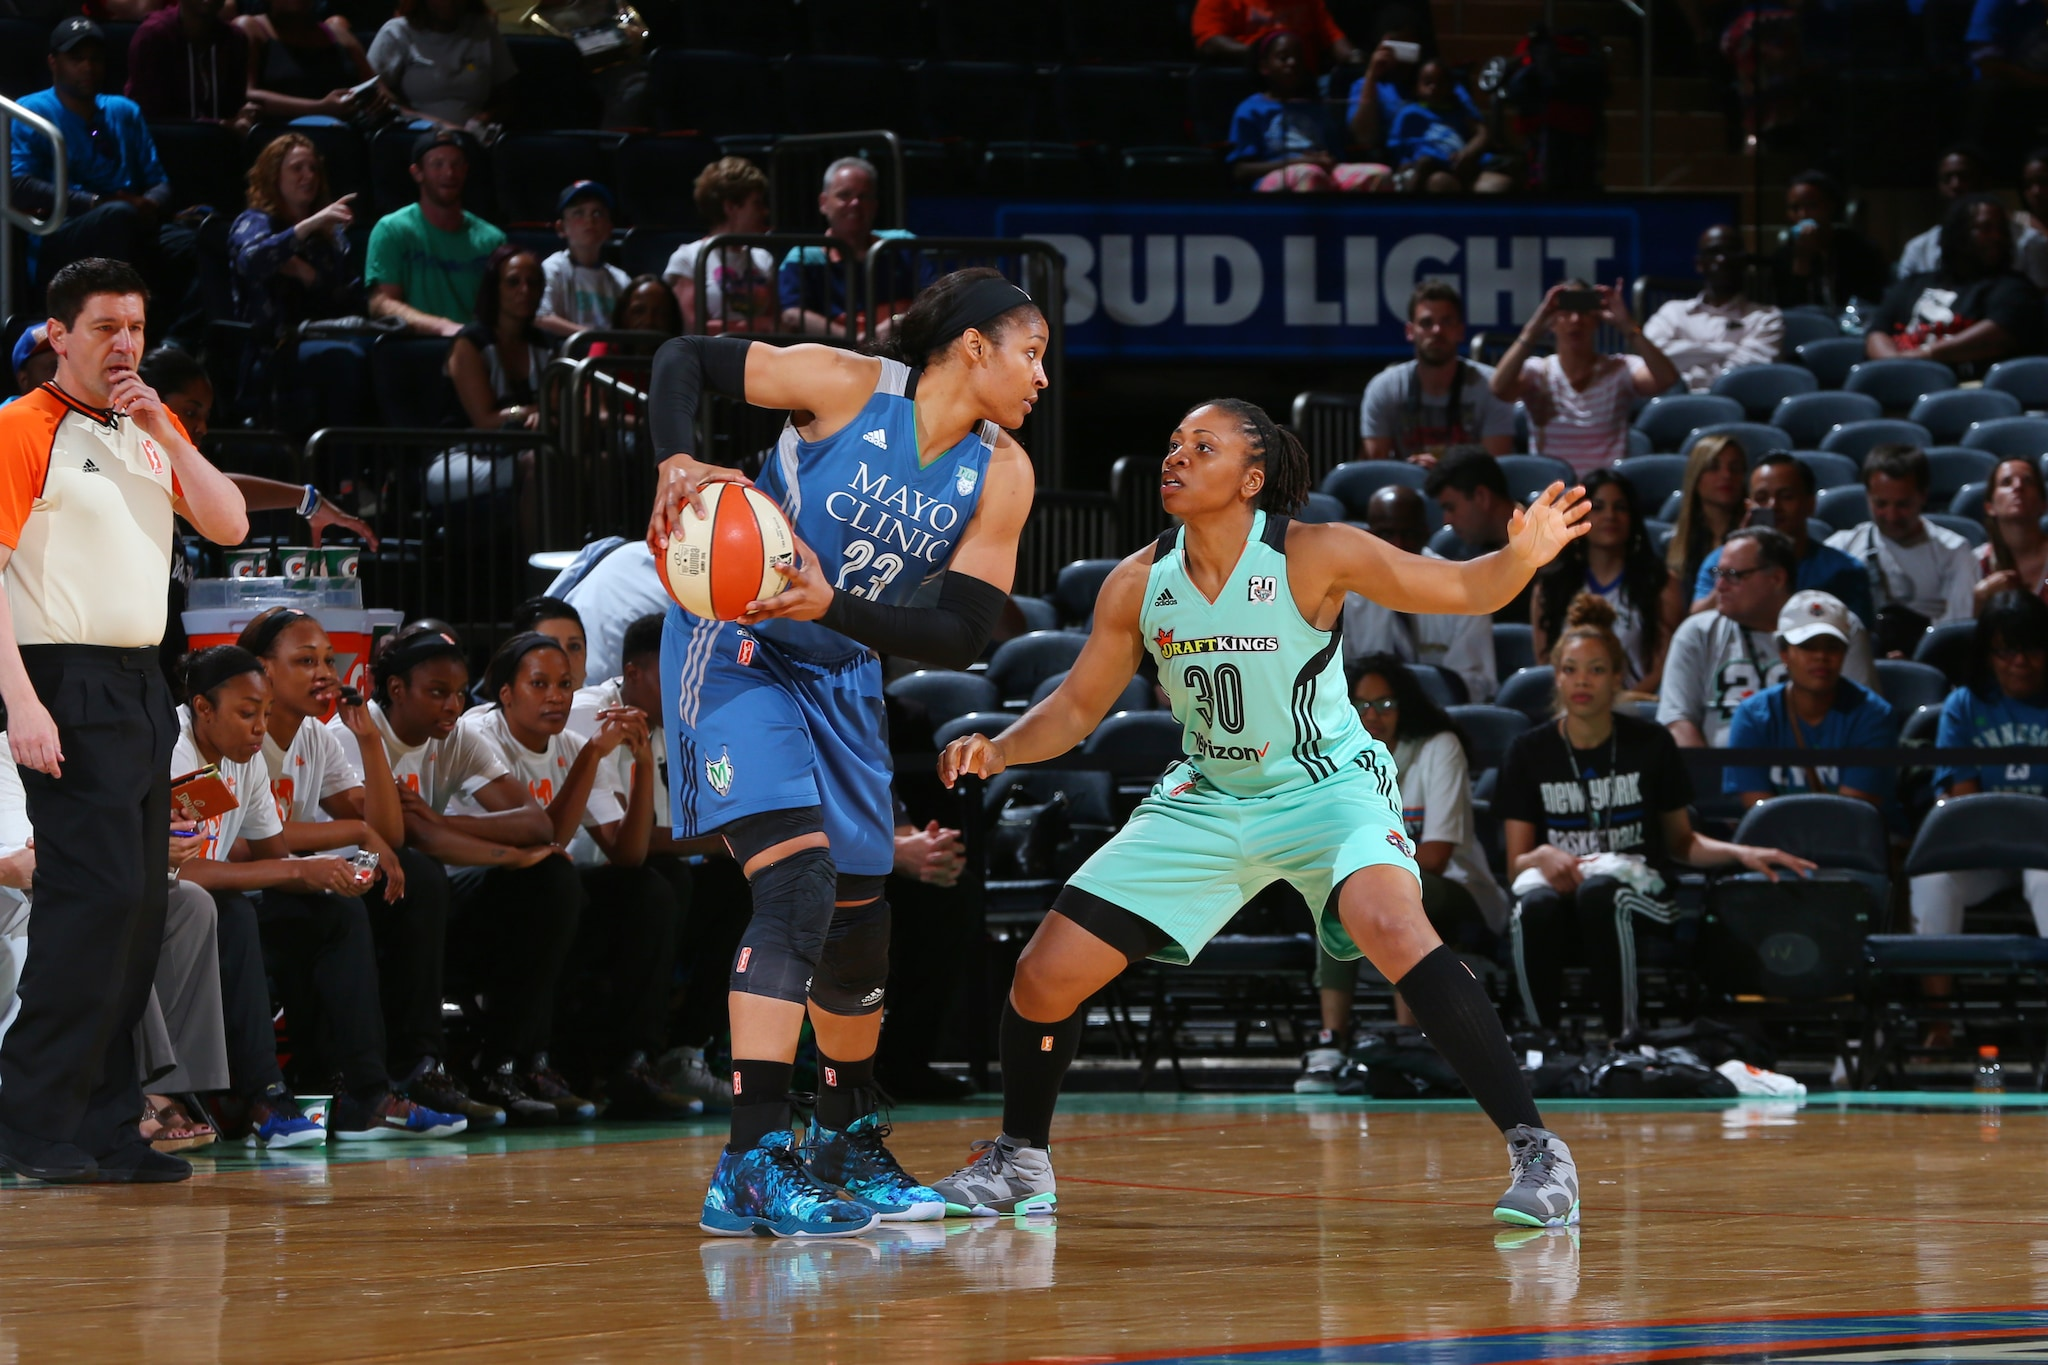 NEW YORK, NY - MAY 31: Maya Moore #23 of the Minnesota Lynx defends the ball against Tanisha Wright #30 of the New York Liberty during the game on May 31, 2016 at Madison Square Garden in New York, New York. NOTE TO USER: User expressly acknowledges and agrees that, by downloading and or using this Photograph, user is consenting to the terms and conditions of the Getty Images License Agreement. Mandatory Copyright Notice: Copyright 2016 NBAE (Photo by Mike Stobe/NBAE via Getty Images)